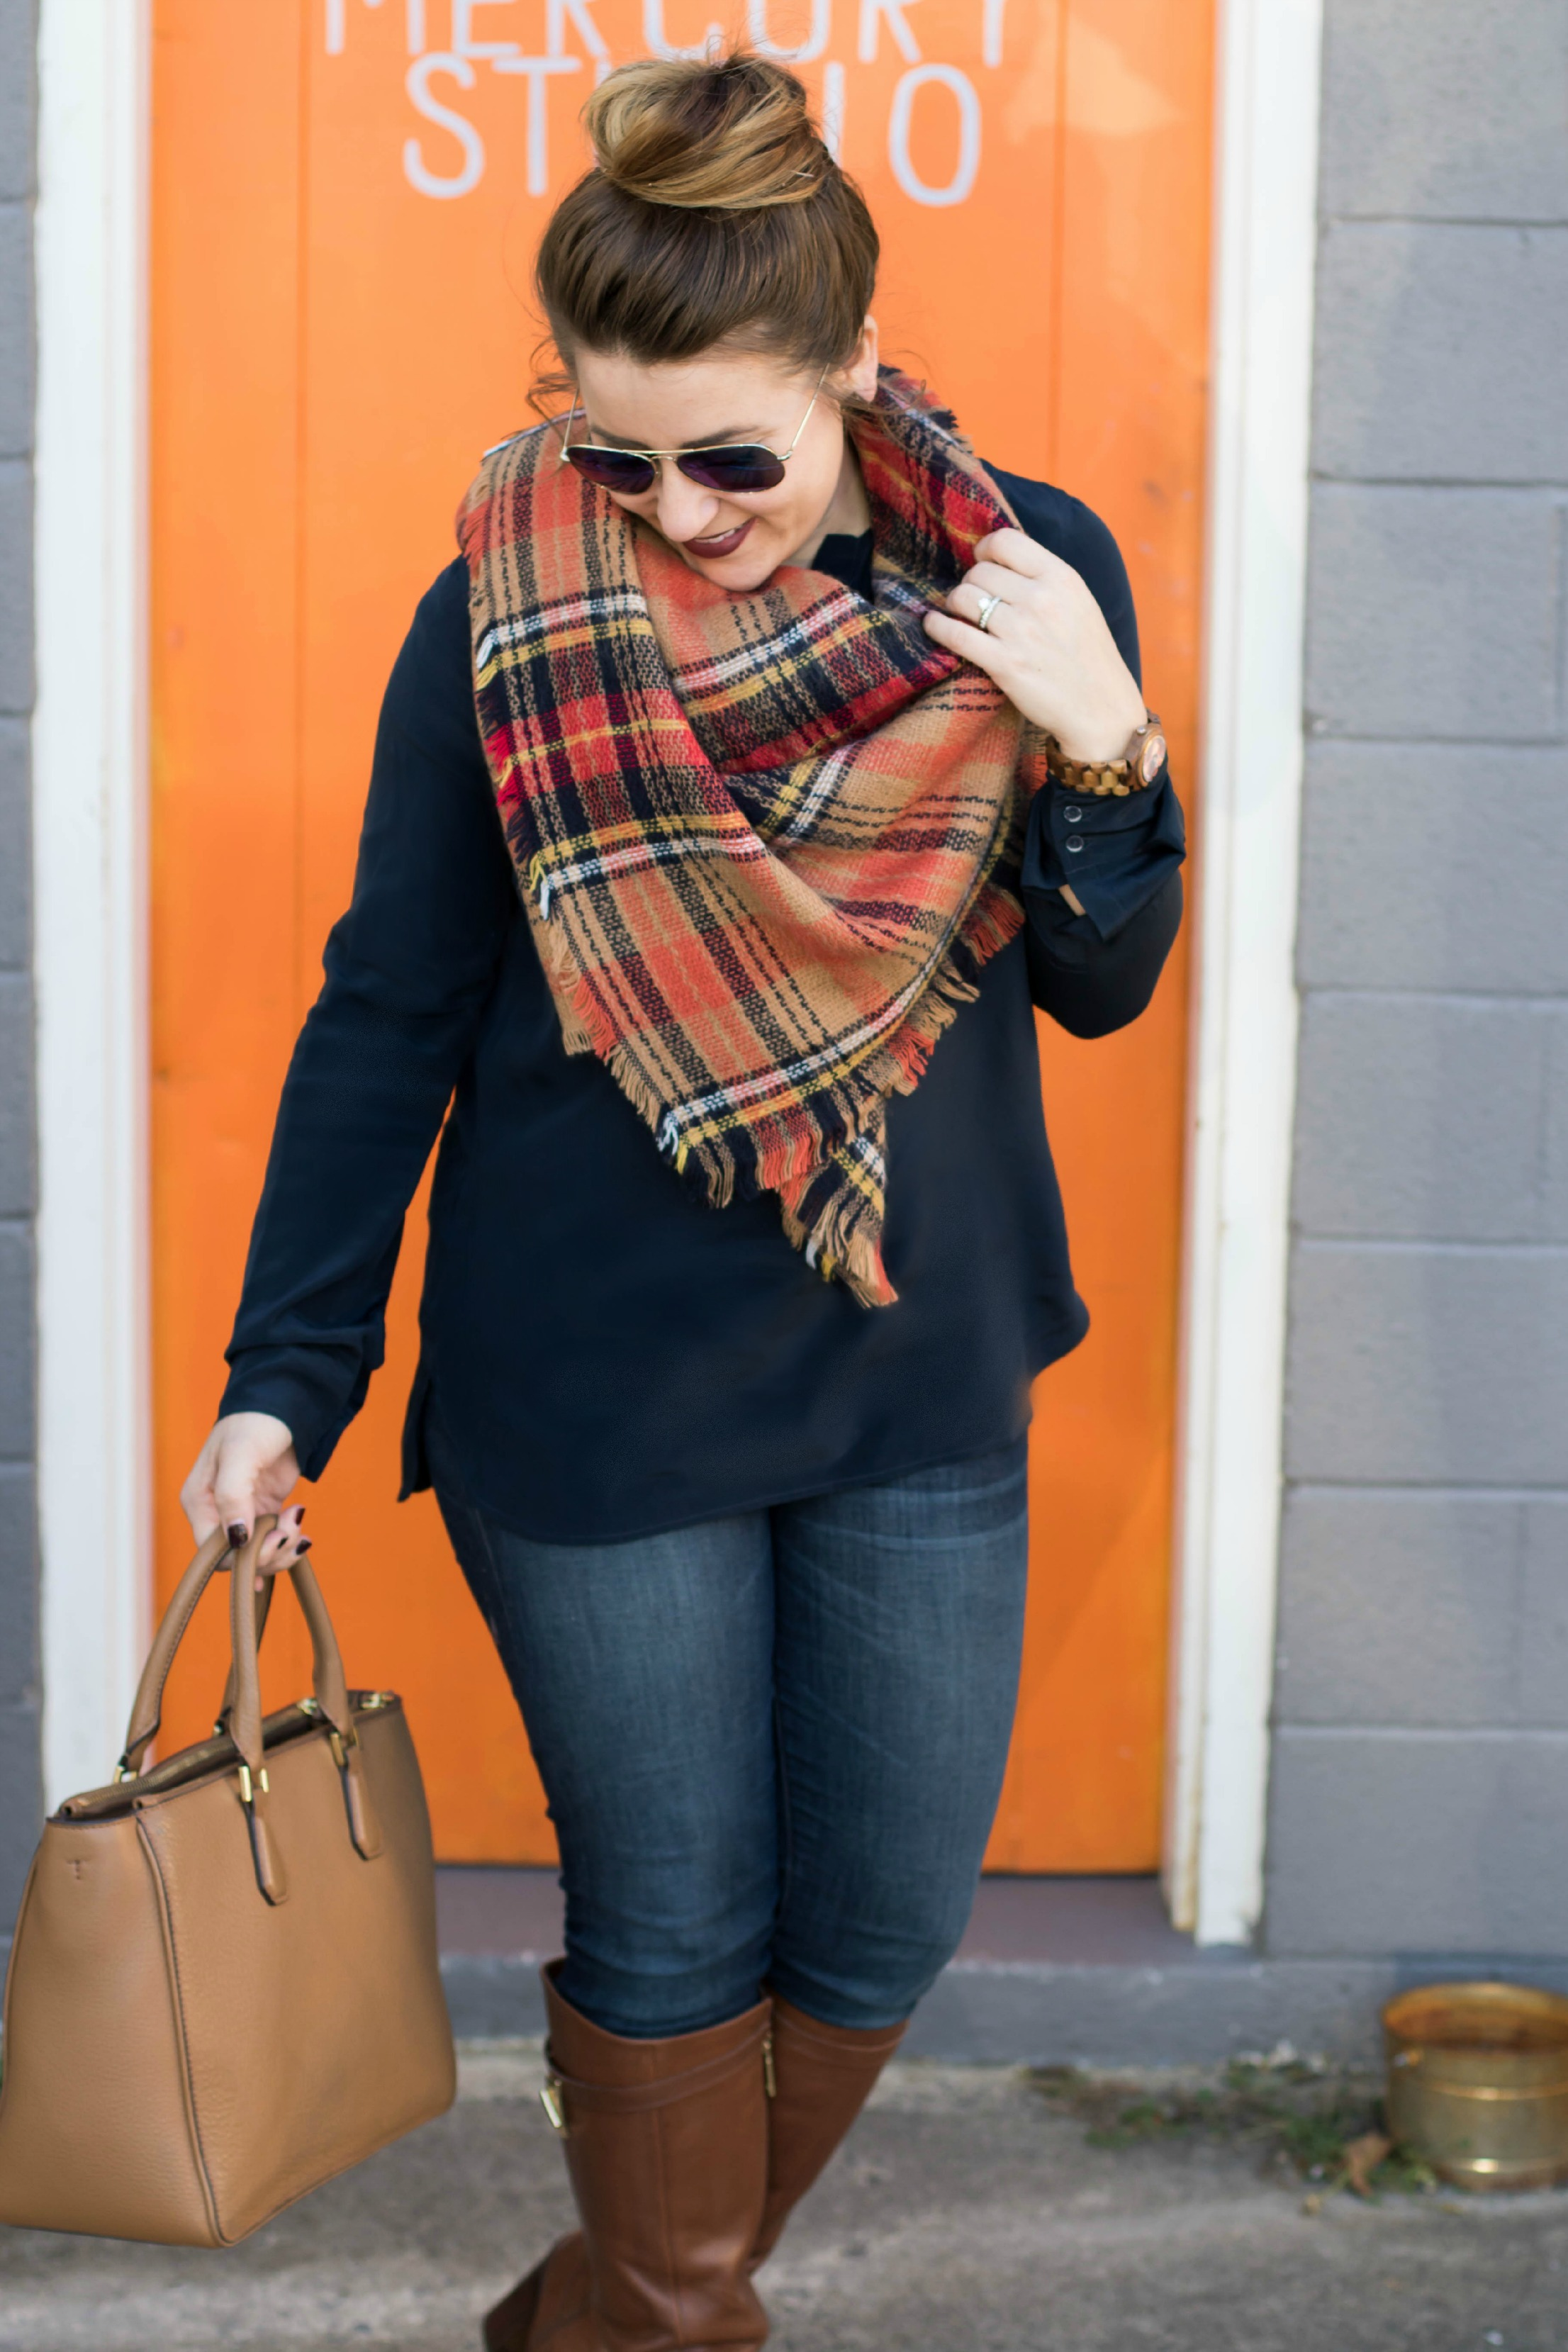 Blanket Scarves and Wooden Watches